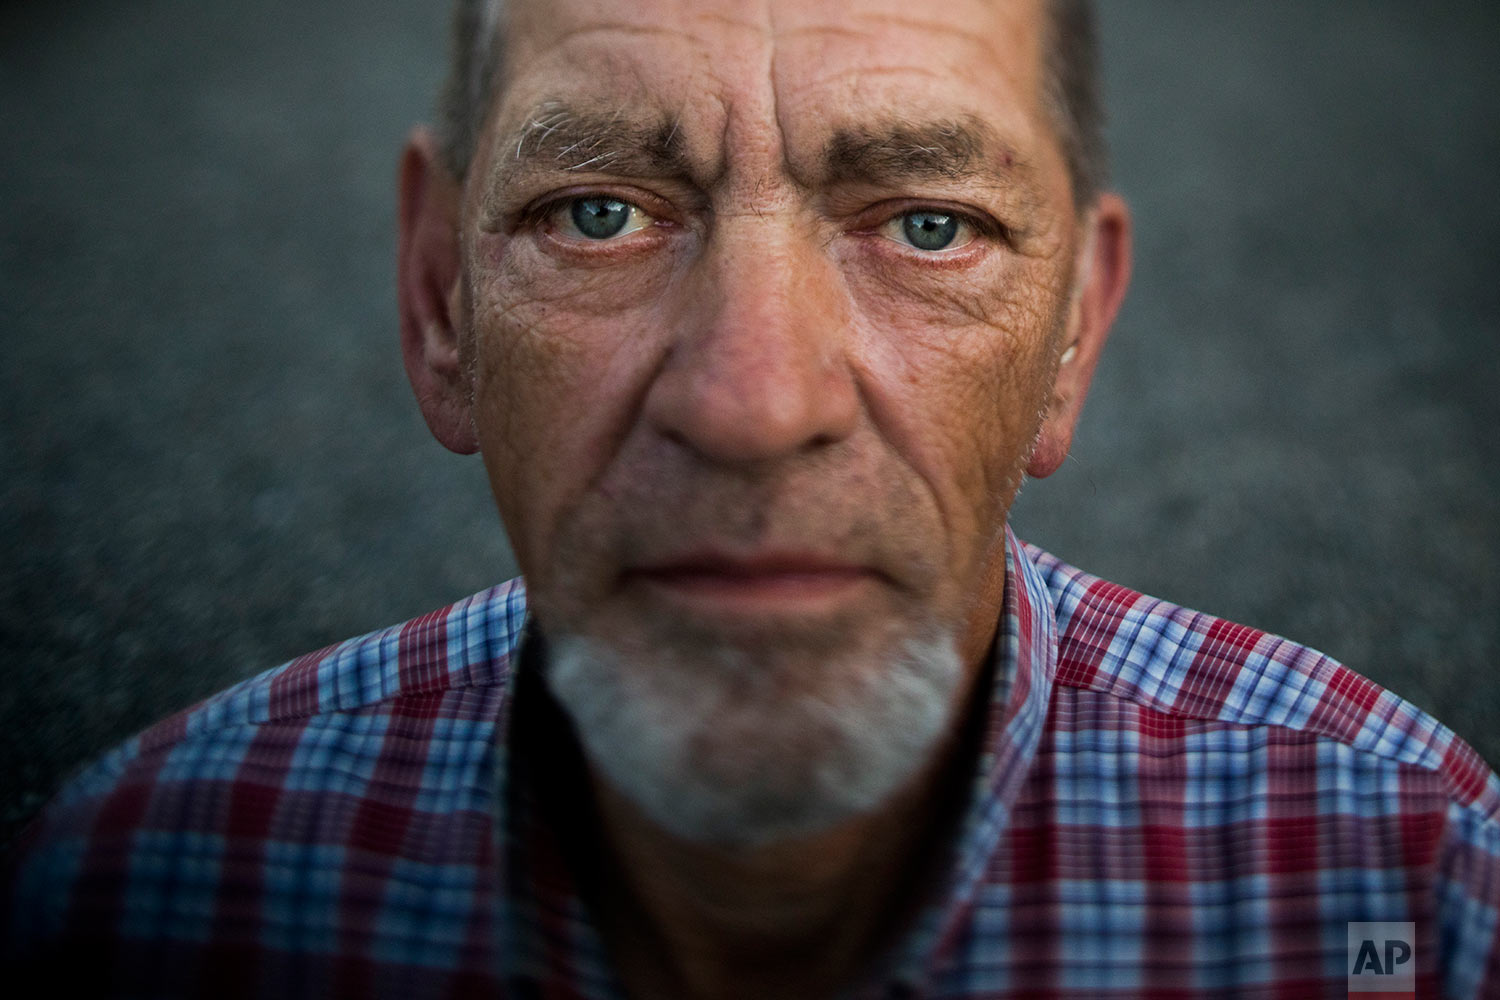 """Robert Irwin, 72, pauses for photos at Camp Second Chance, a city-sanctioned homeless encampment, Tuesday, Sept. 26, 2017, in Seattle. Irwin said he is planning a trip to Michigan to see his older sister. """"I have my own SUV, Chevy Trailblazer. I want to go in March. It will be my last trip."""" (AP Photo/Jae C. Hong)"""